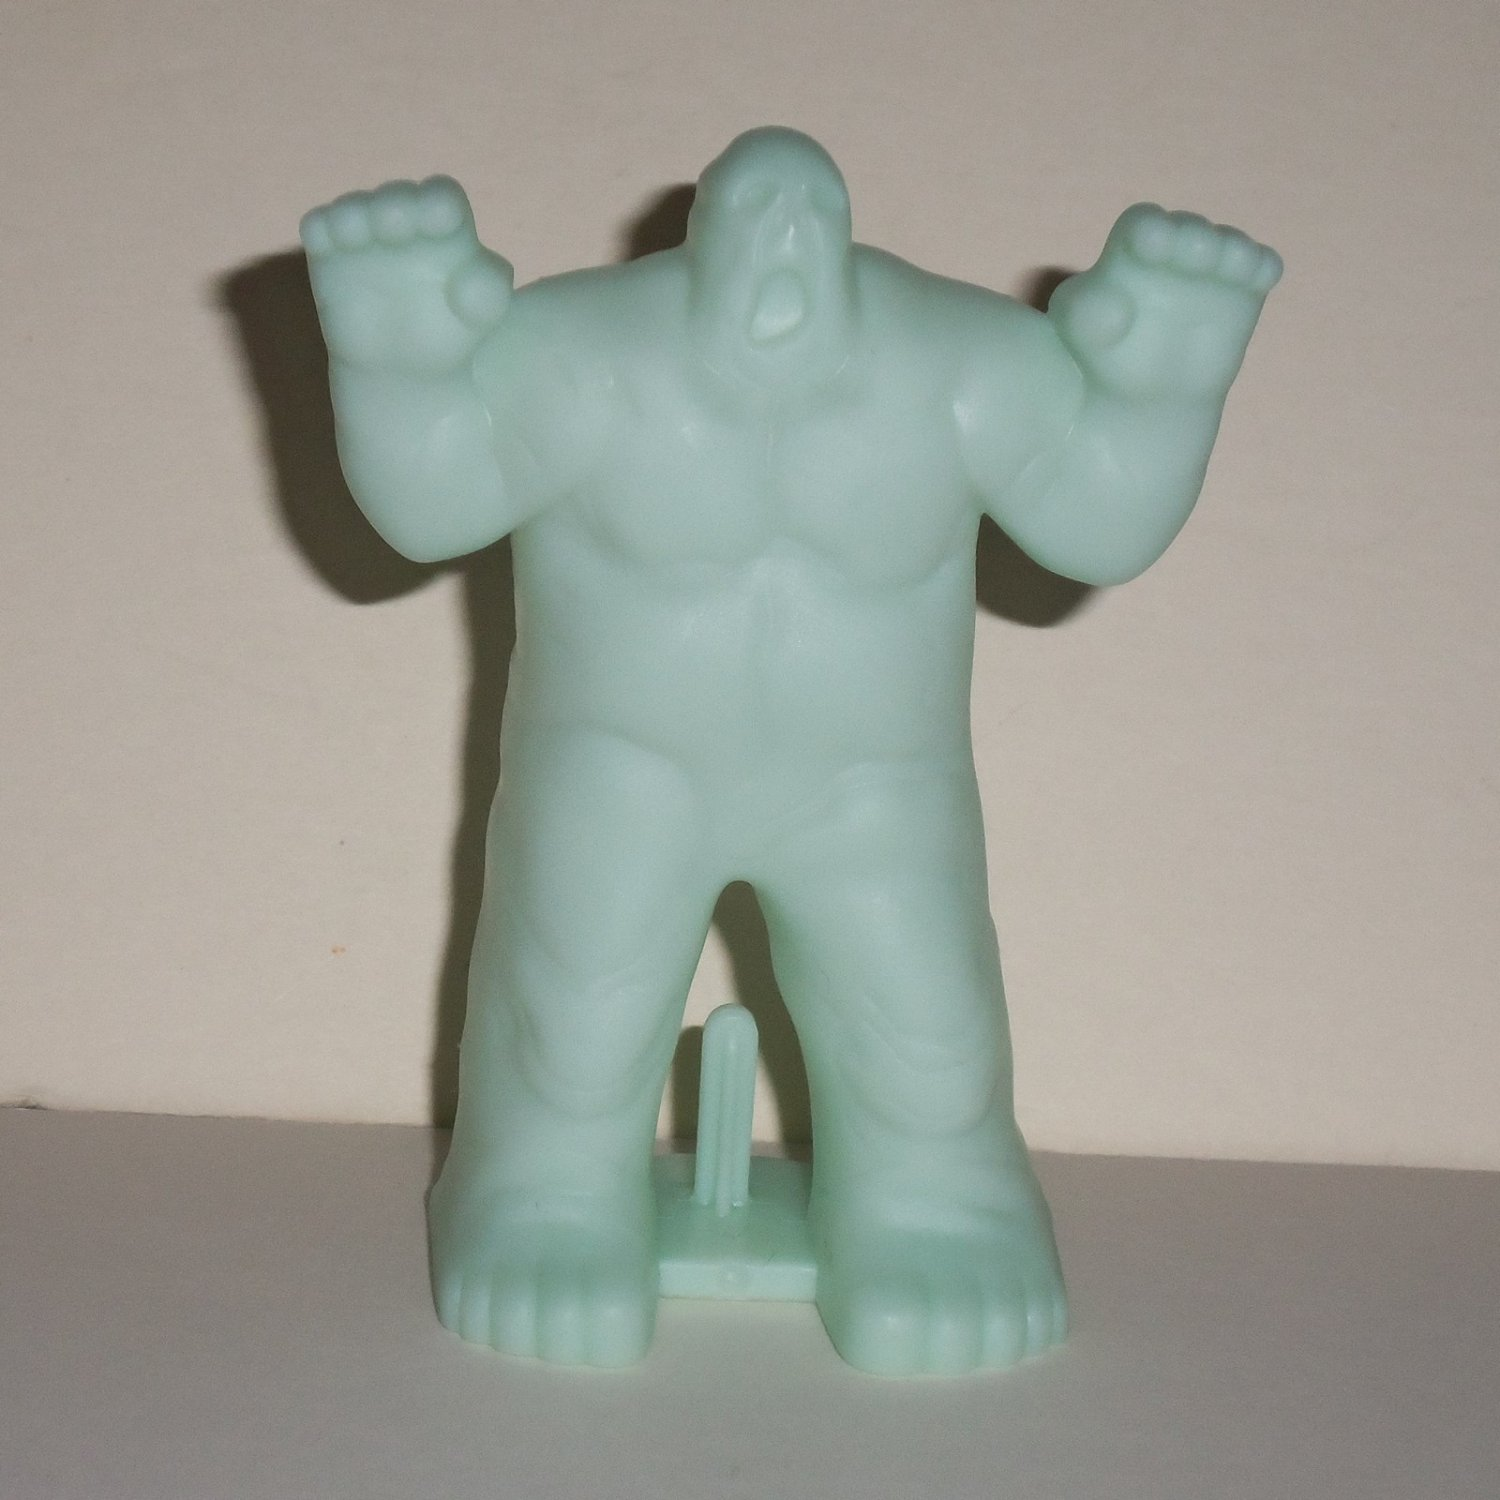 Wendy S 2014 Scooby Doo Monster Mystery Glow In The Dark Costume Figure Kids Meal Toy Loose Used